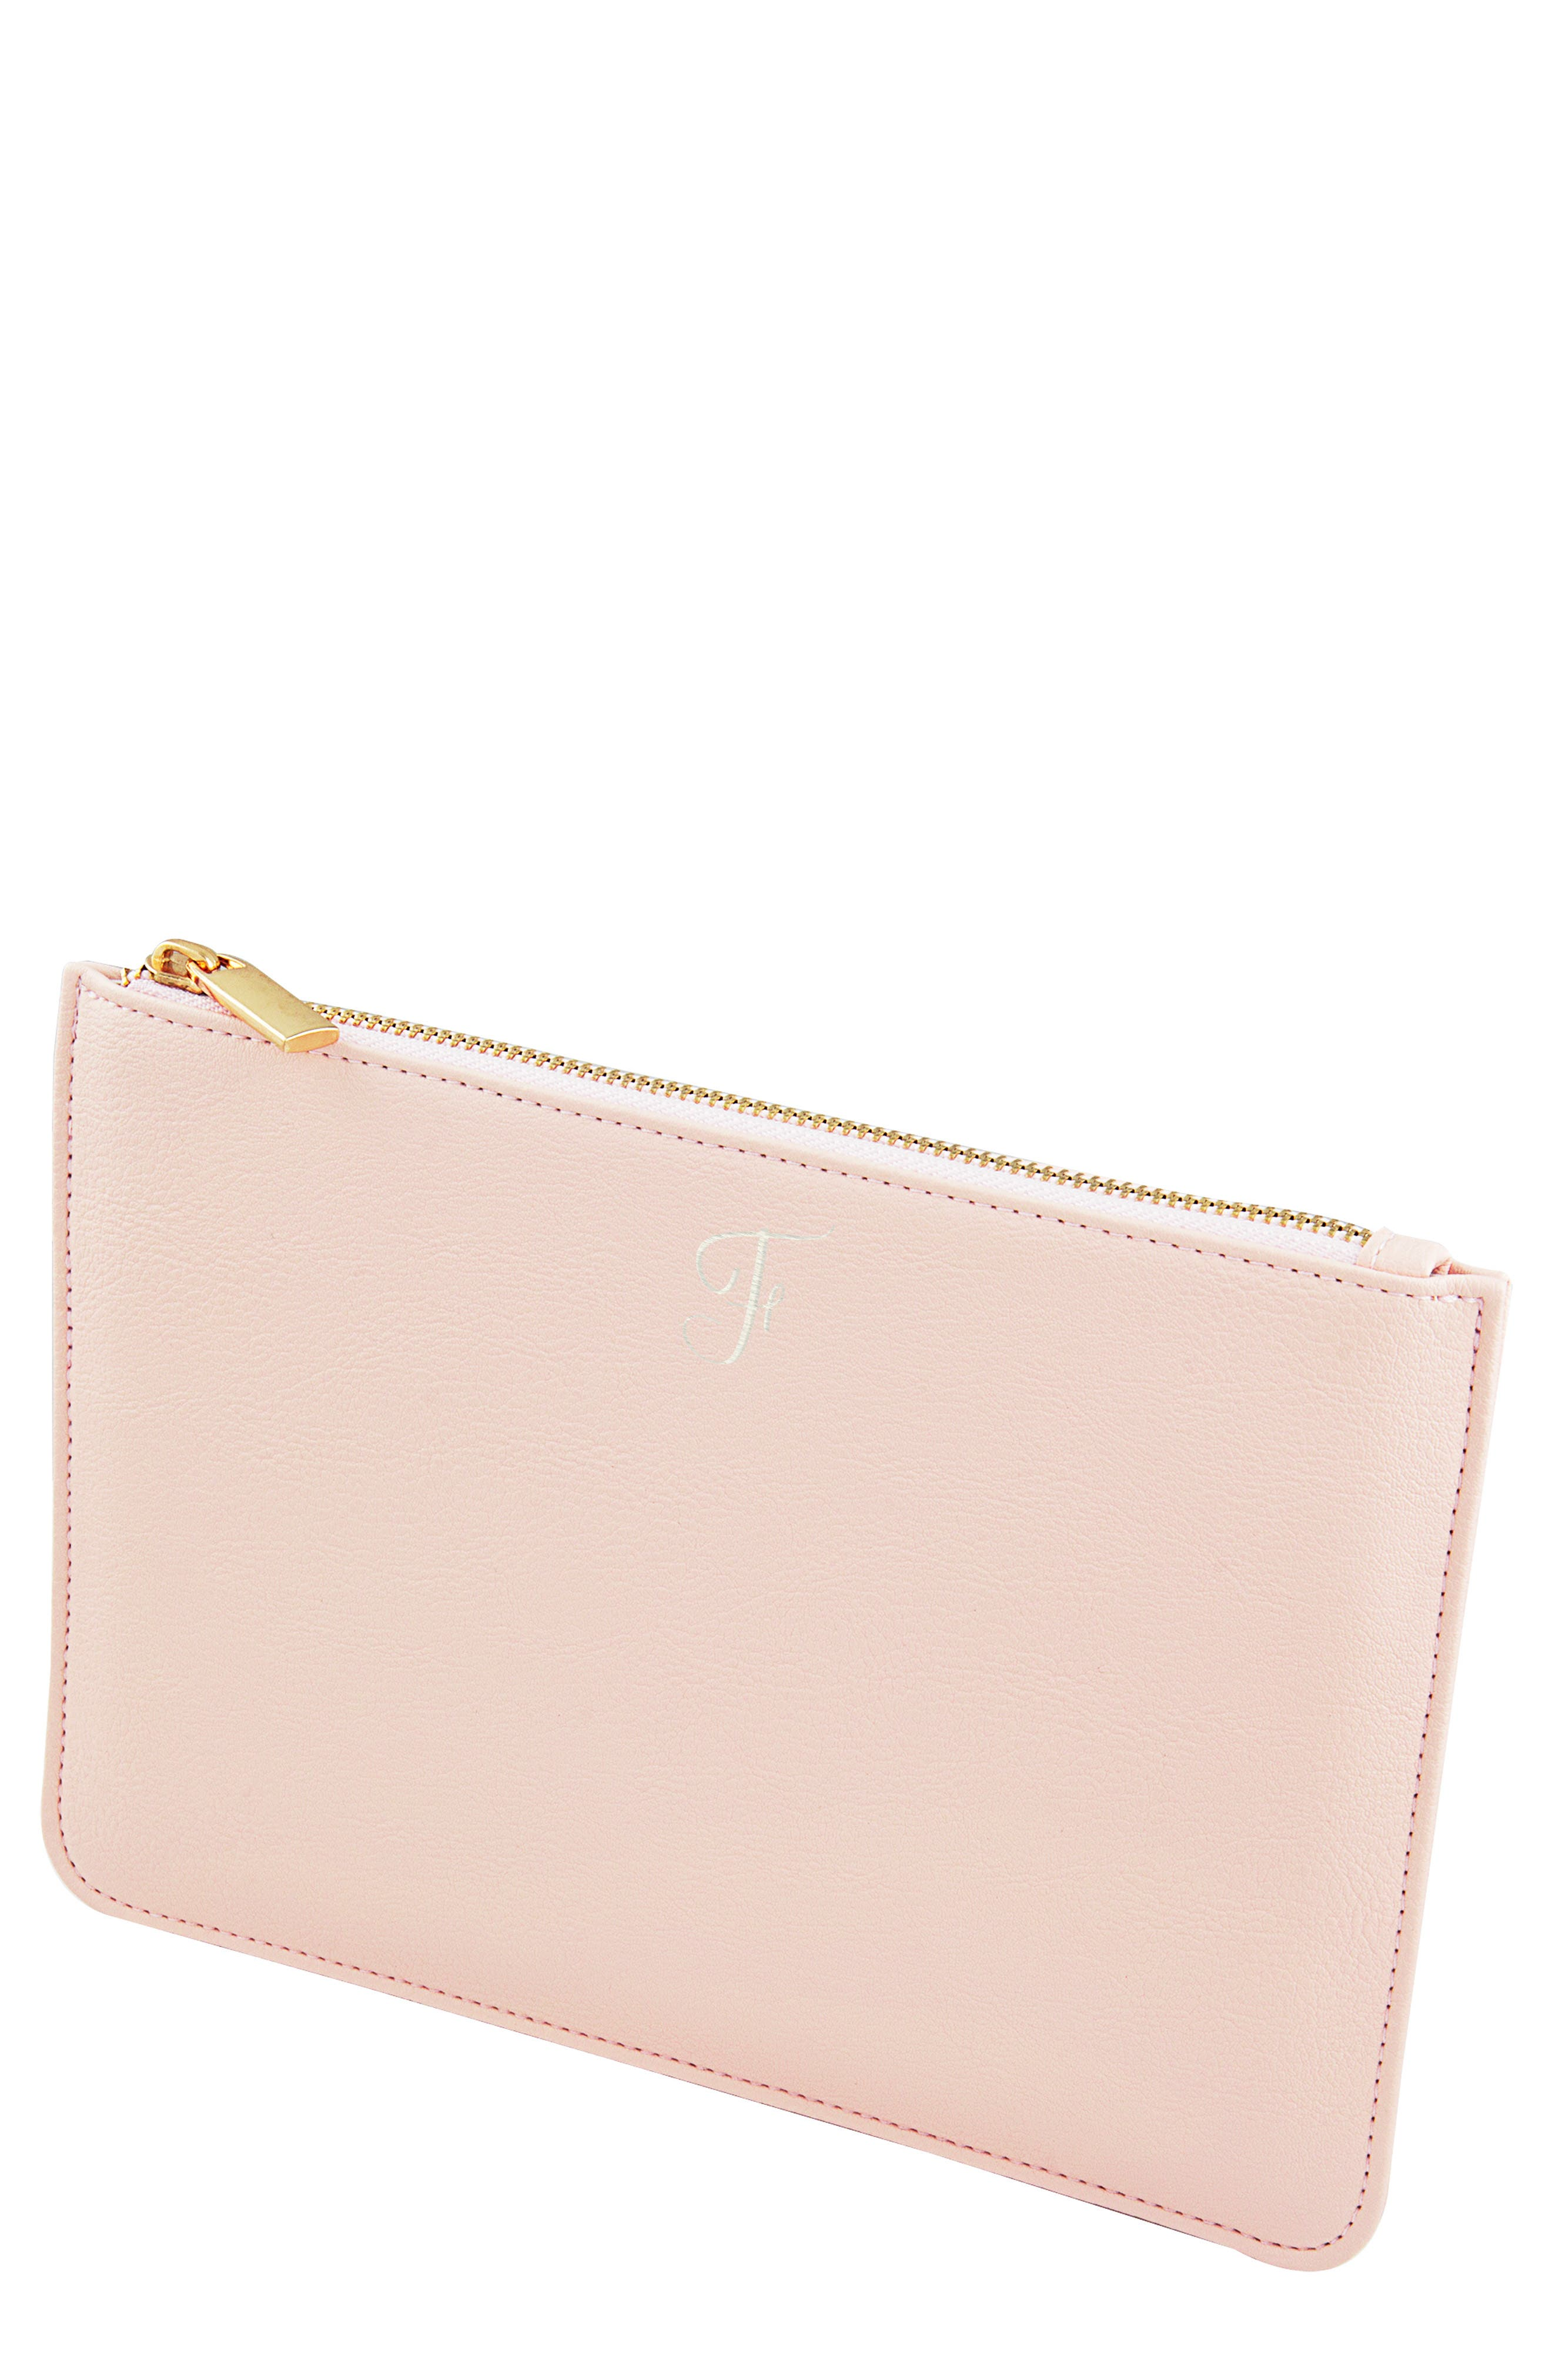 Personalized Faux Leather Pouch,                             Main thumbnail 1, color,                             BLUSH PINK F